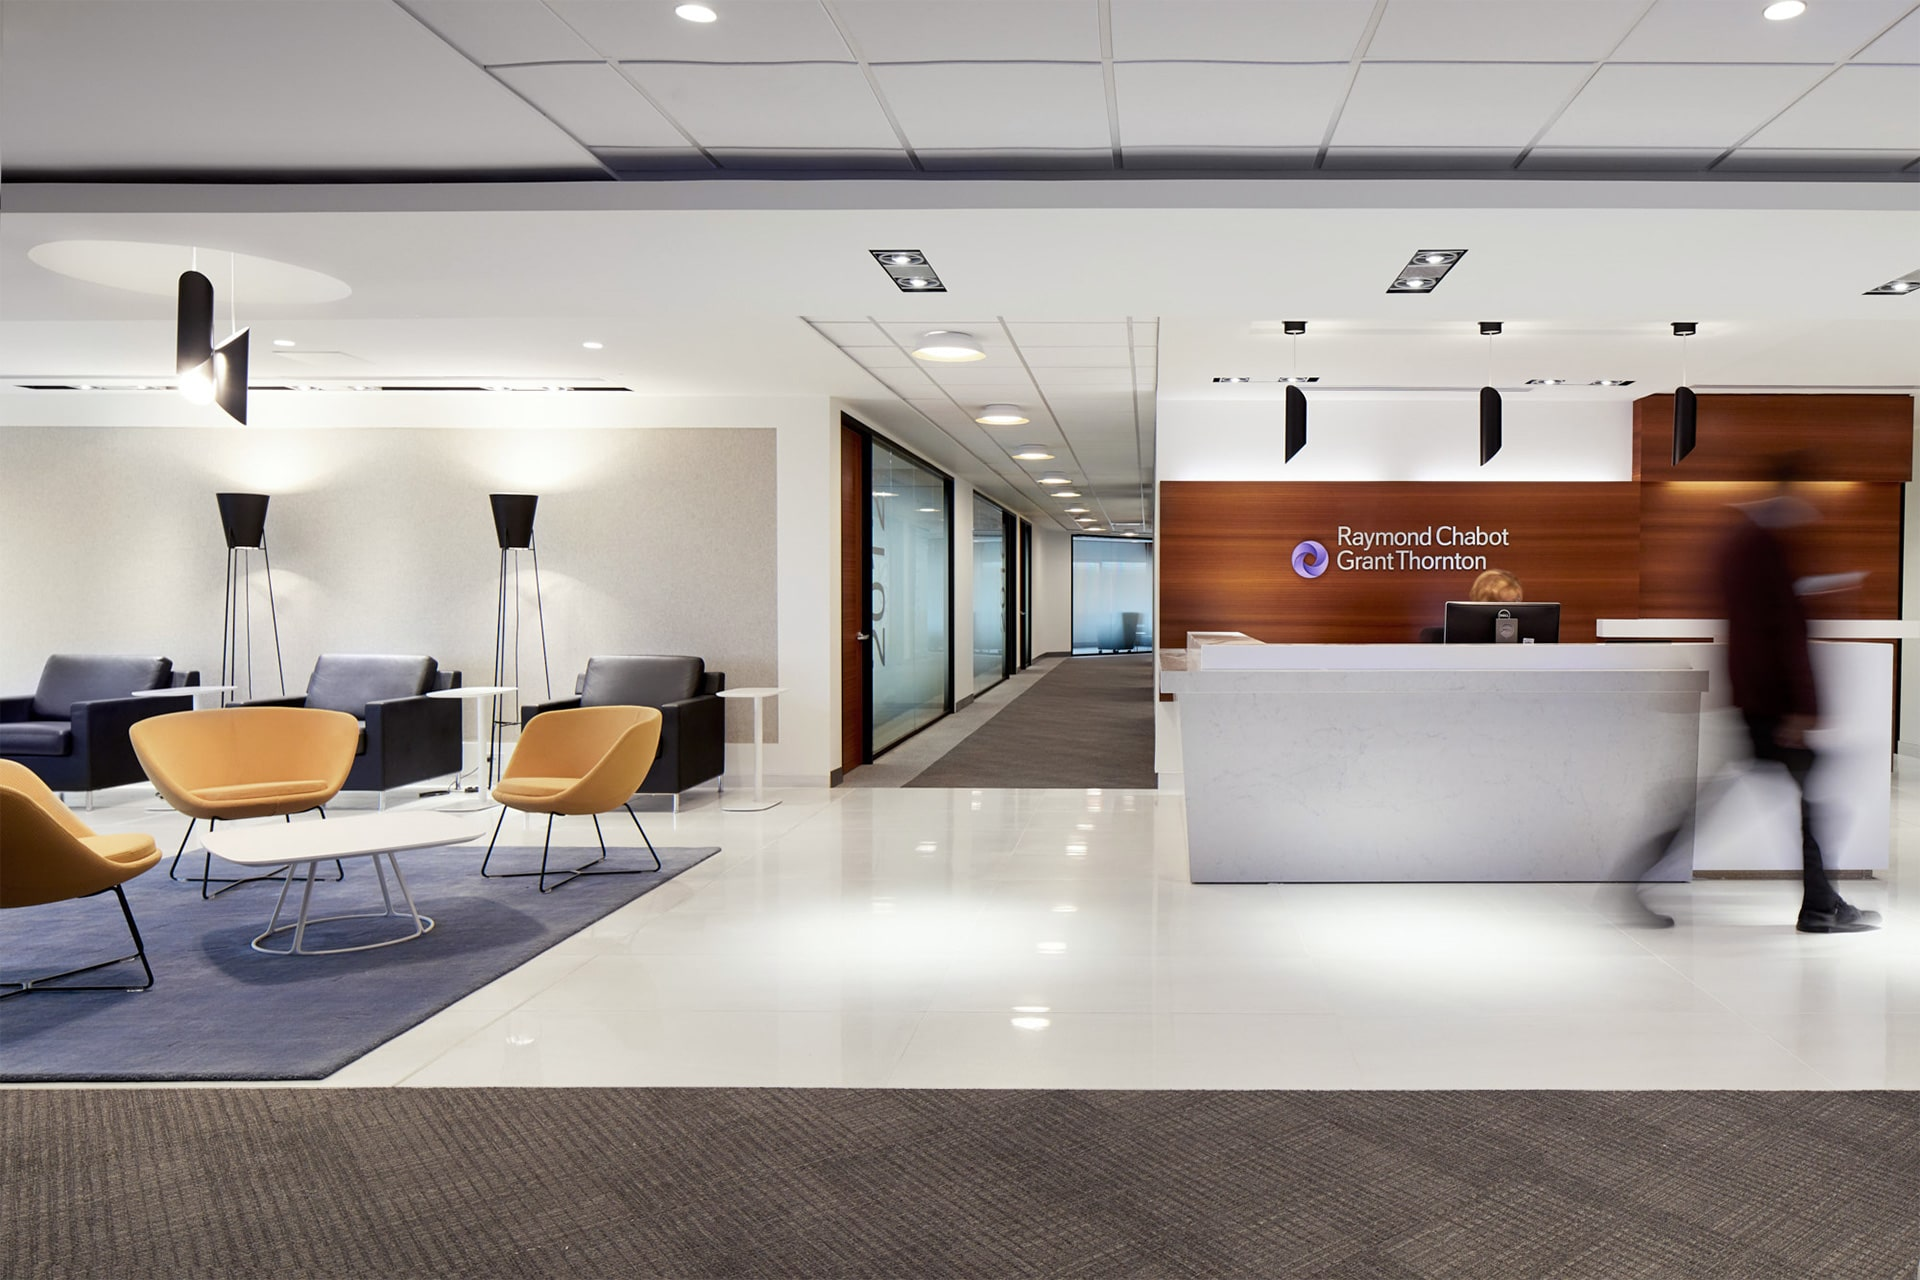 Reception and lounge of client zone at RCGT head office in Montreal designed by VAD